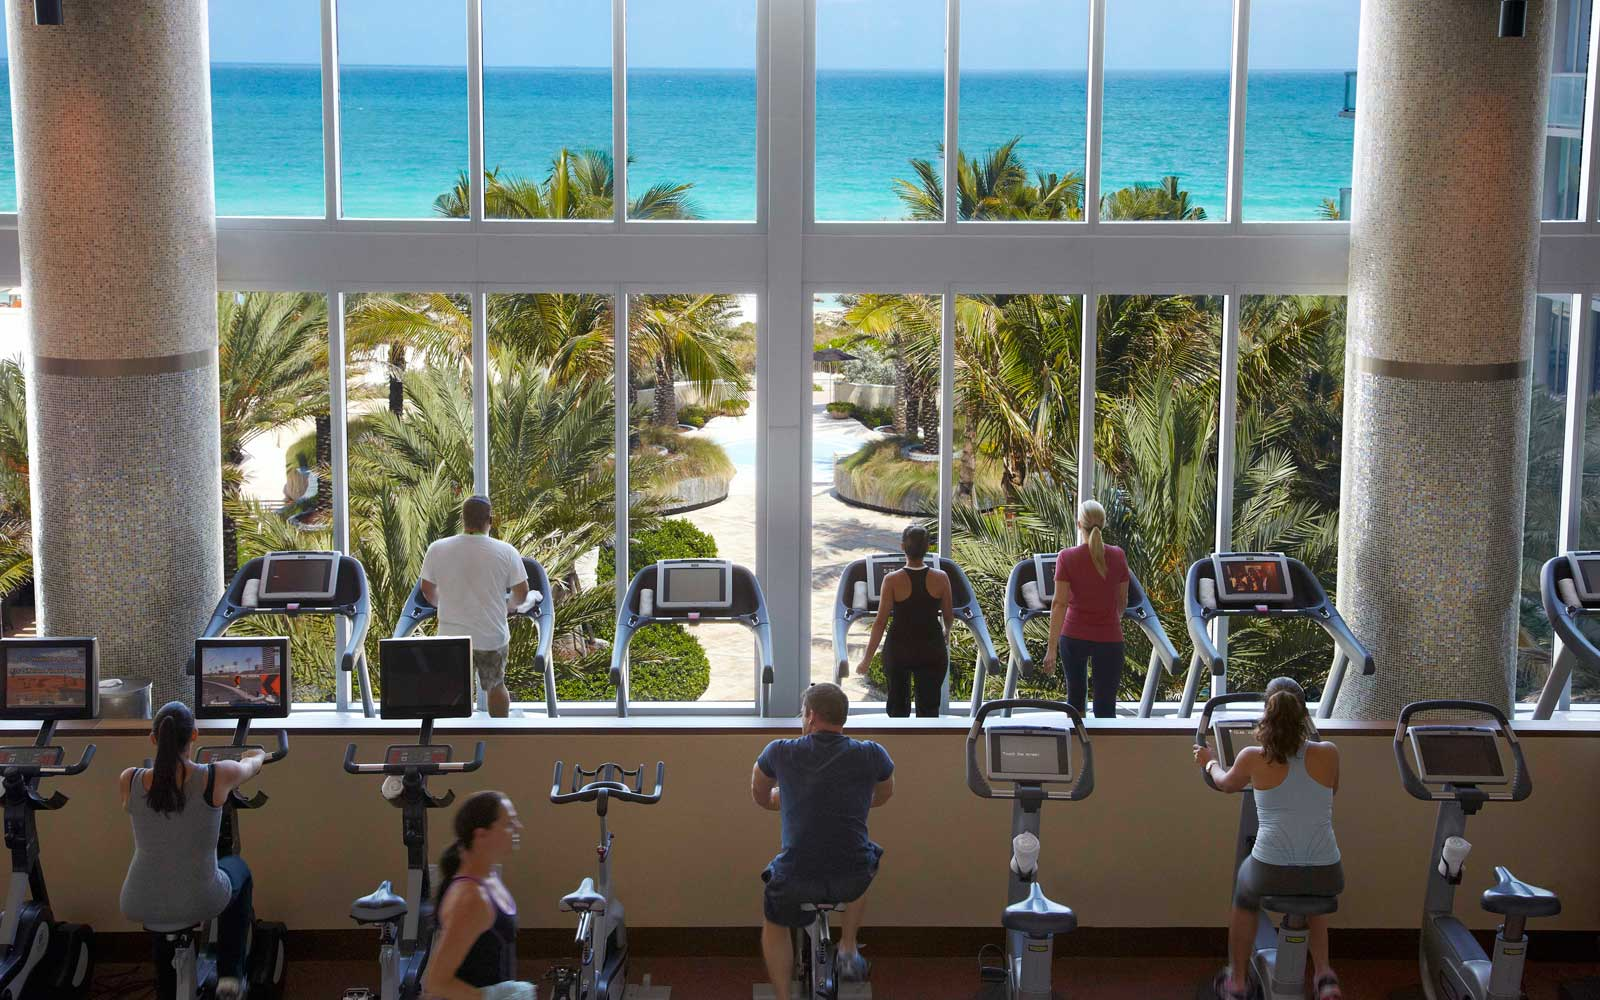 Gym at the Carillon Miami Wellness Resort